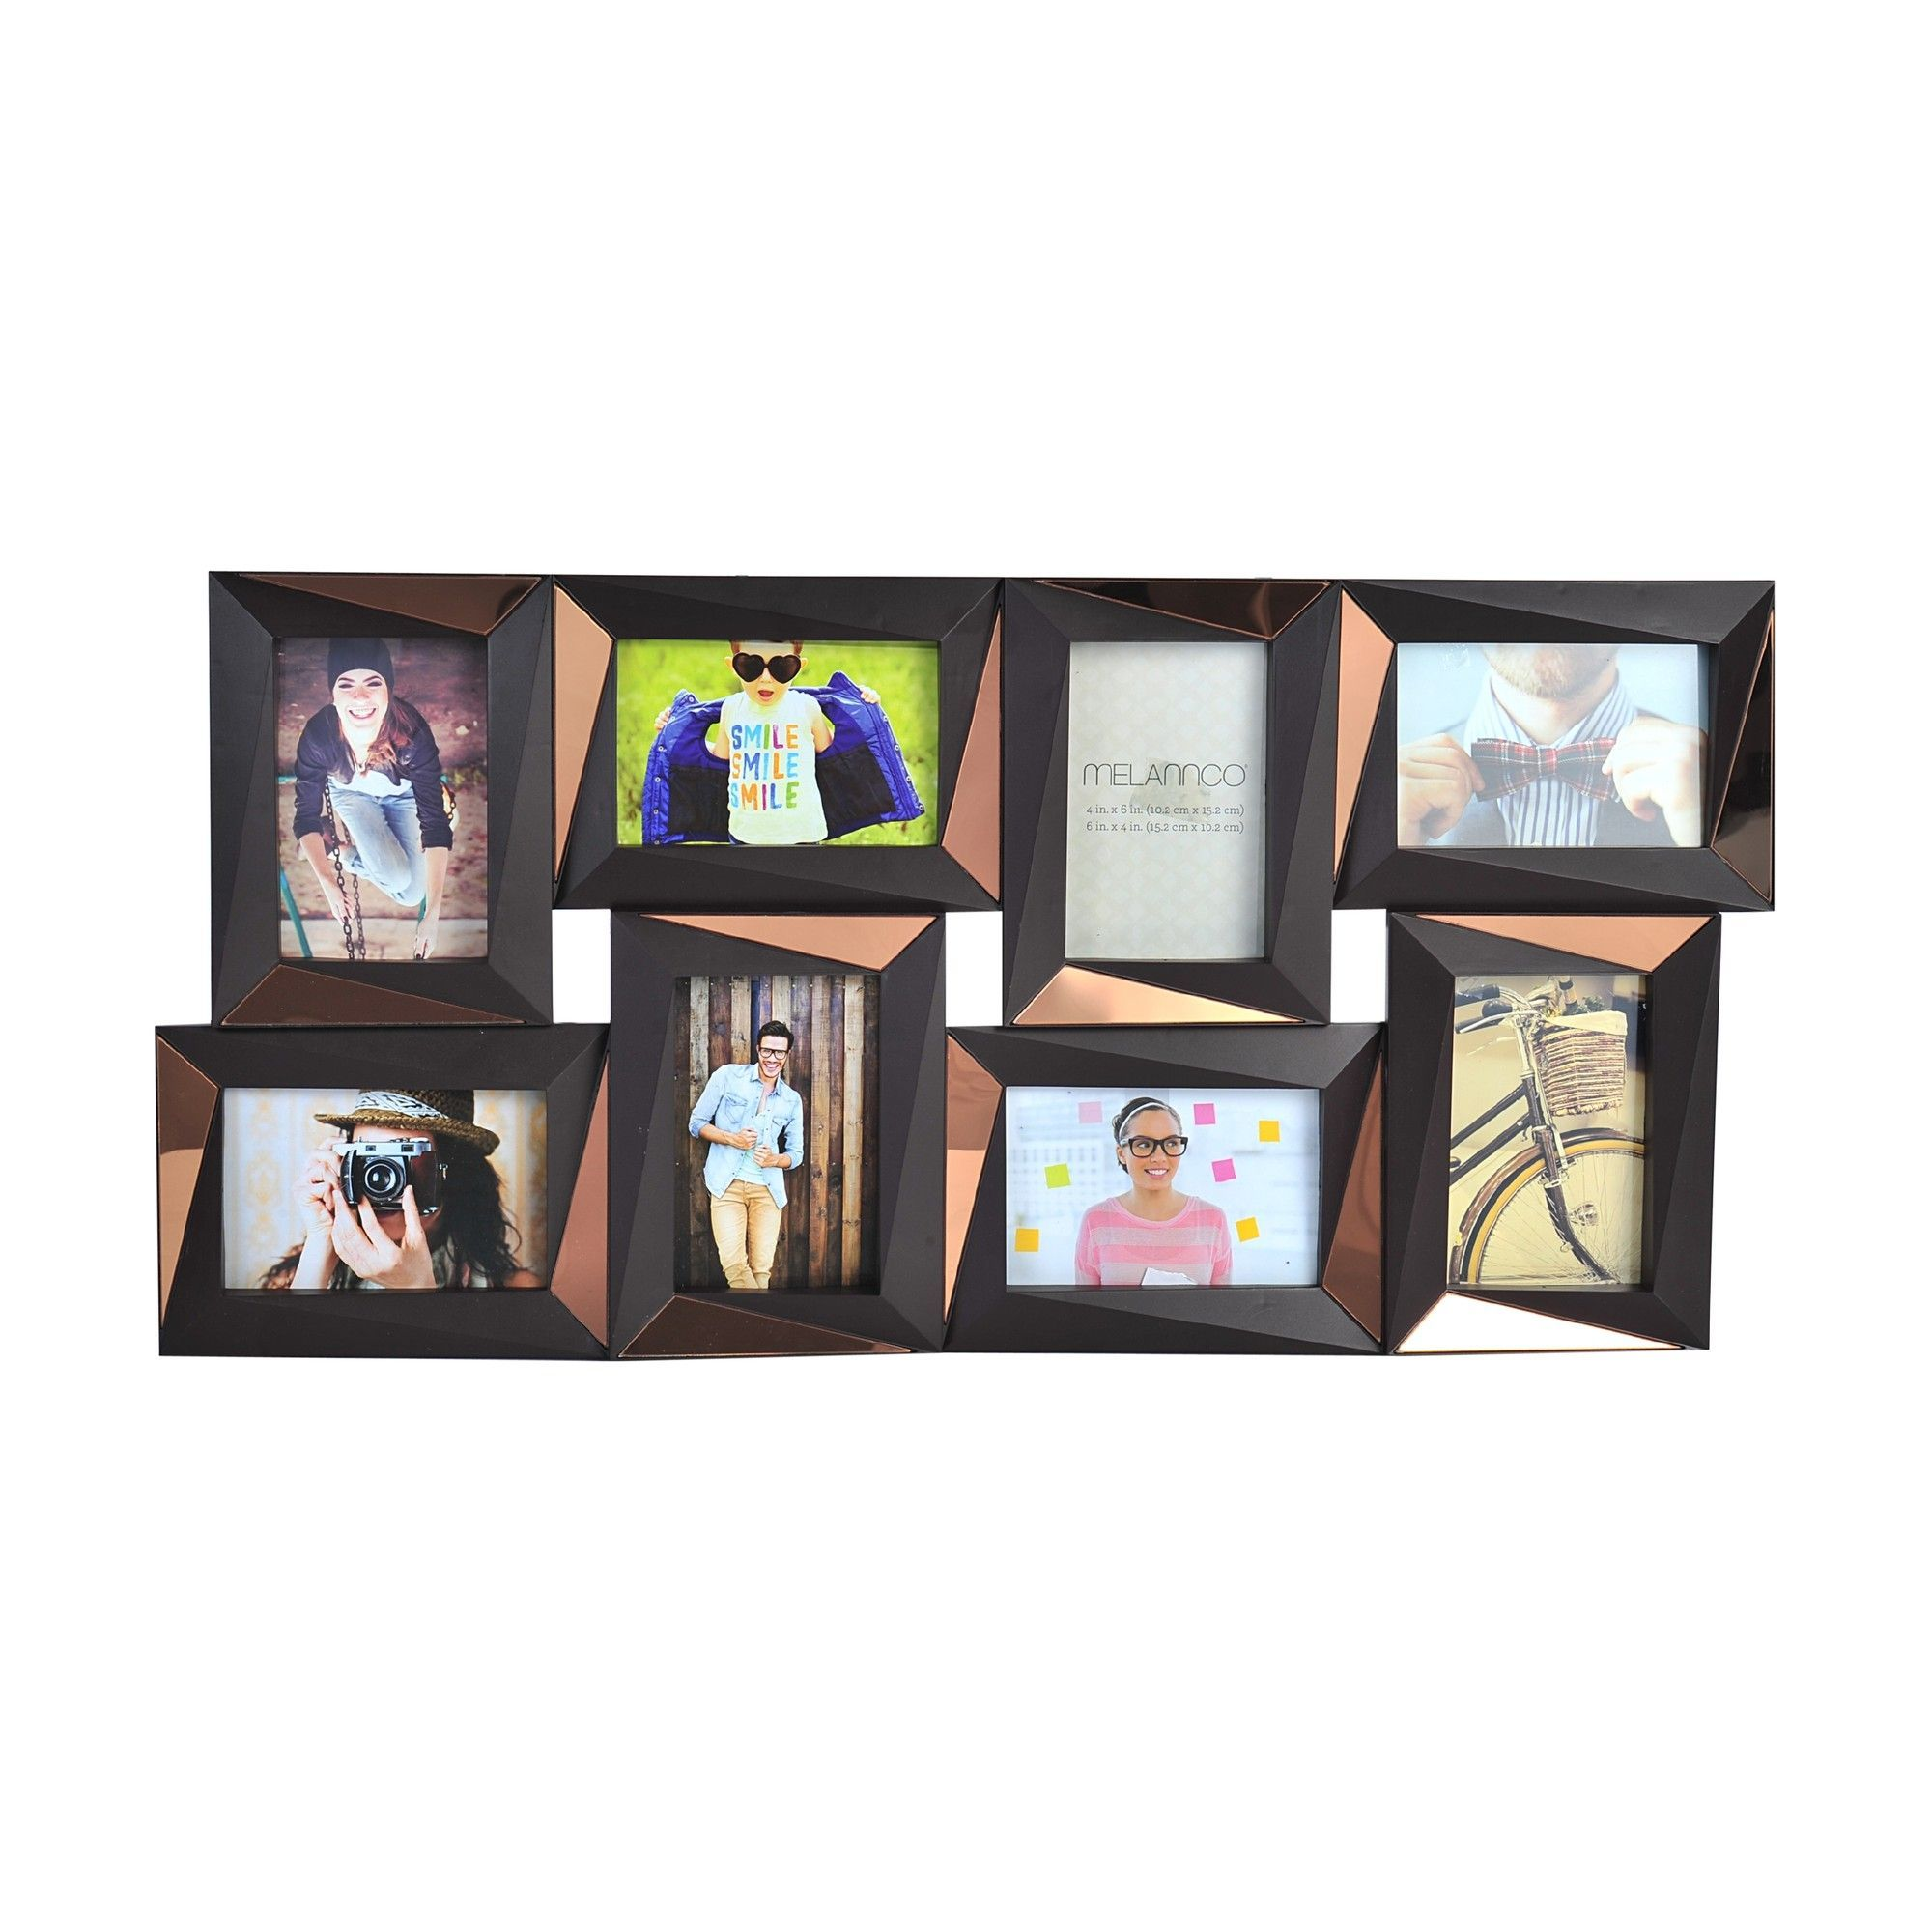 8 Piece Opening Dimensional Collage Picture Frame Set | Collage ...